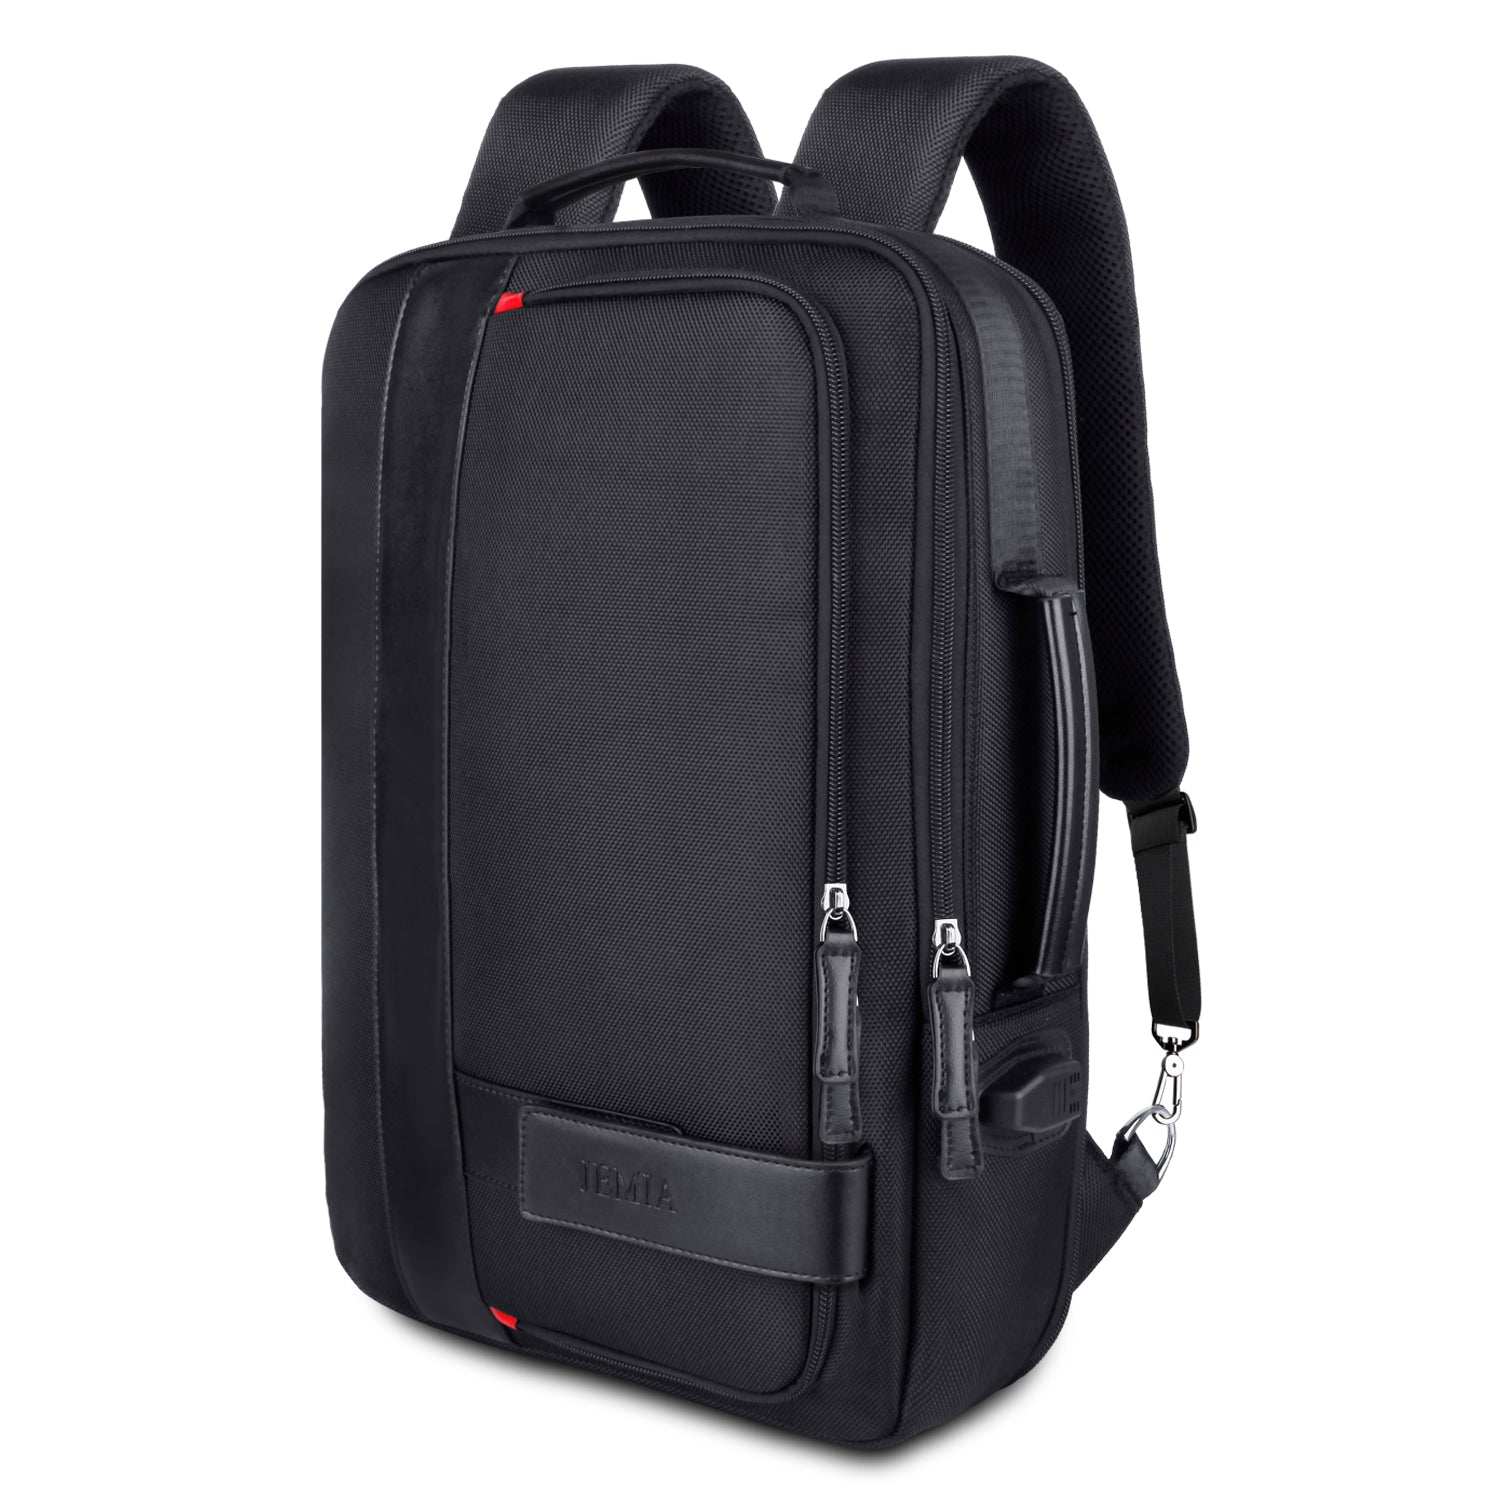 Black Expandable Backpack with USB Charging Port and Laptop Compartment